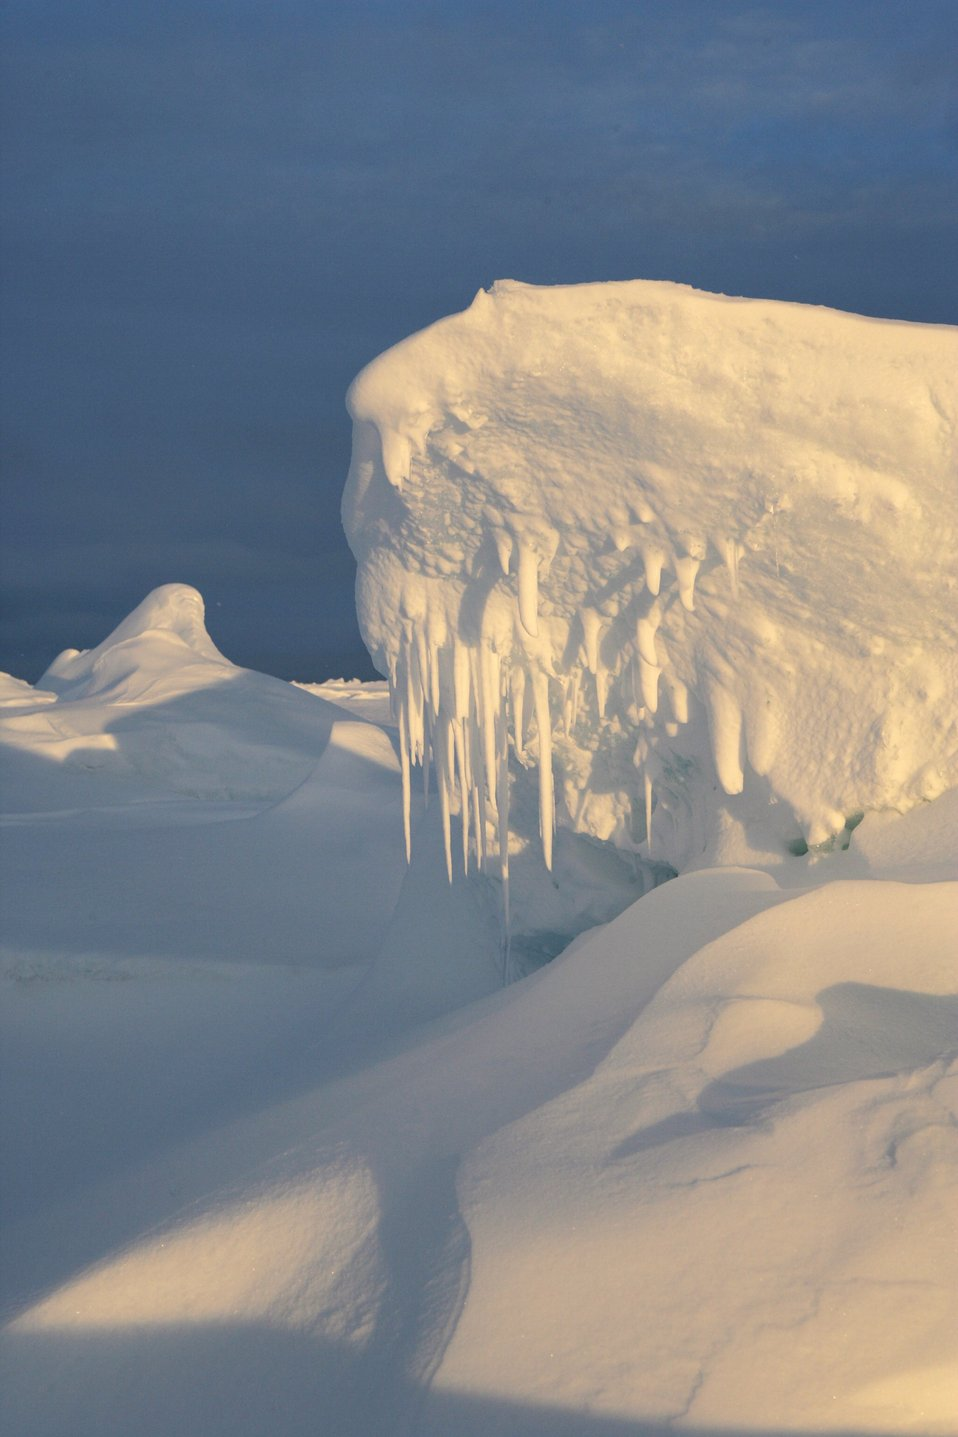 A ridge caused by floes coming together. See: http://www.naturalsciences.org/education/arctic/